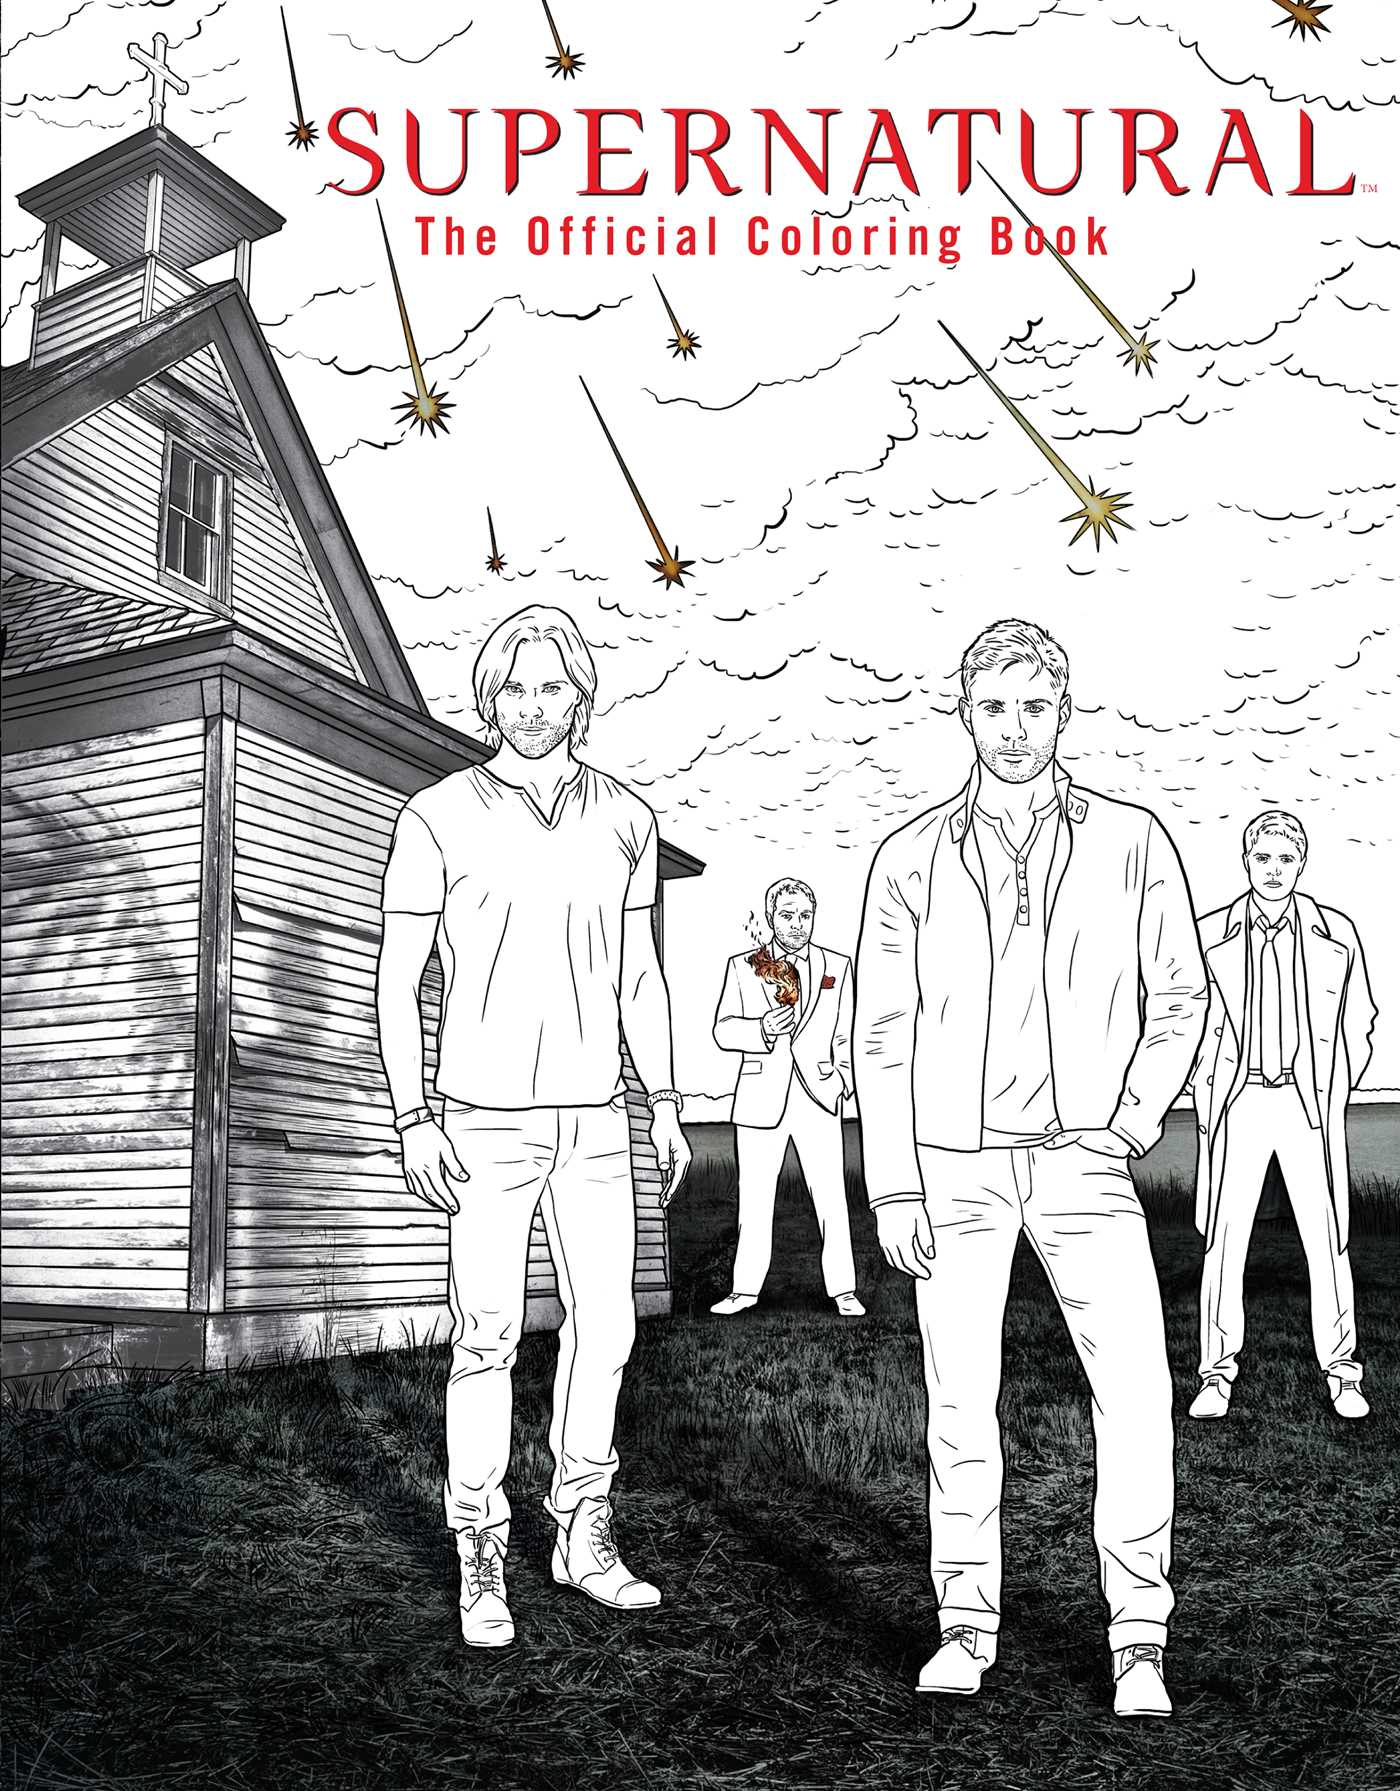 Supernatural the official coloring book 9781608878185 hr